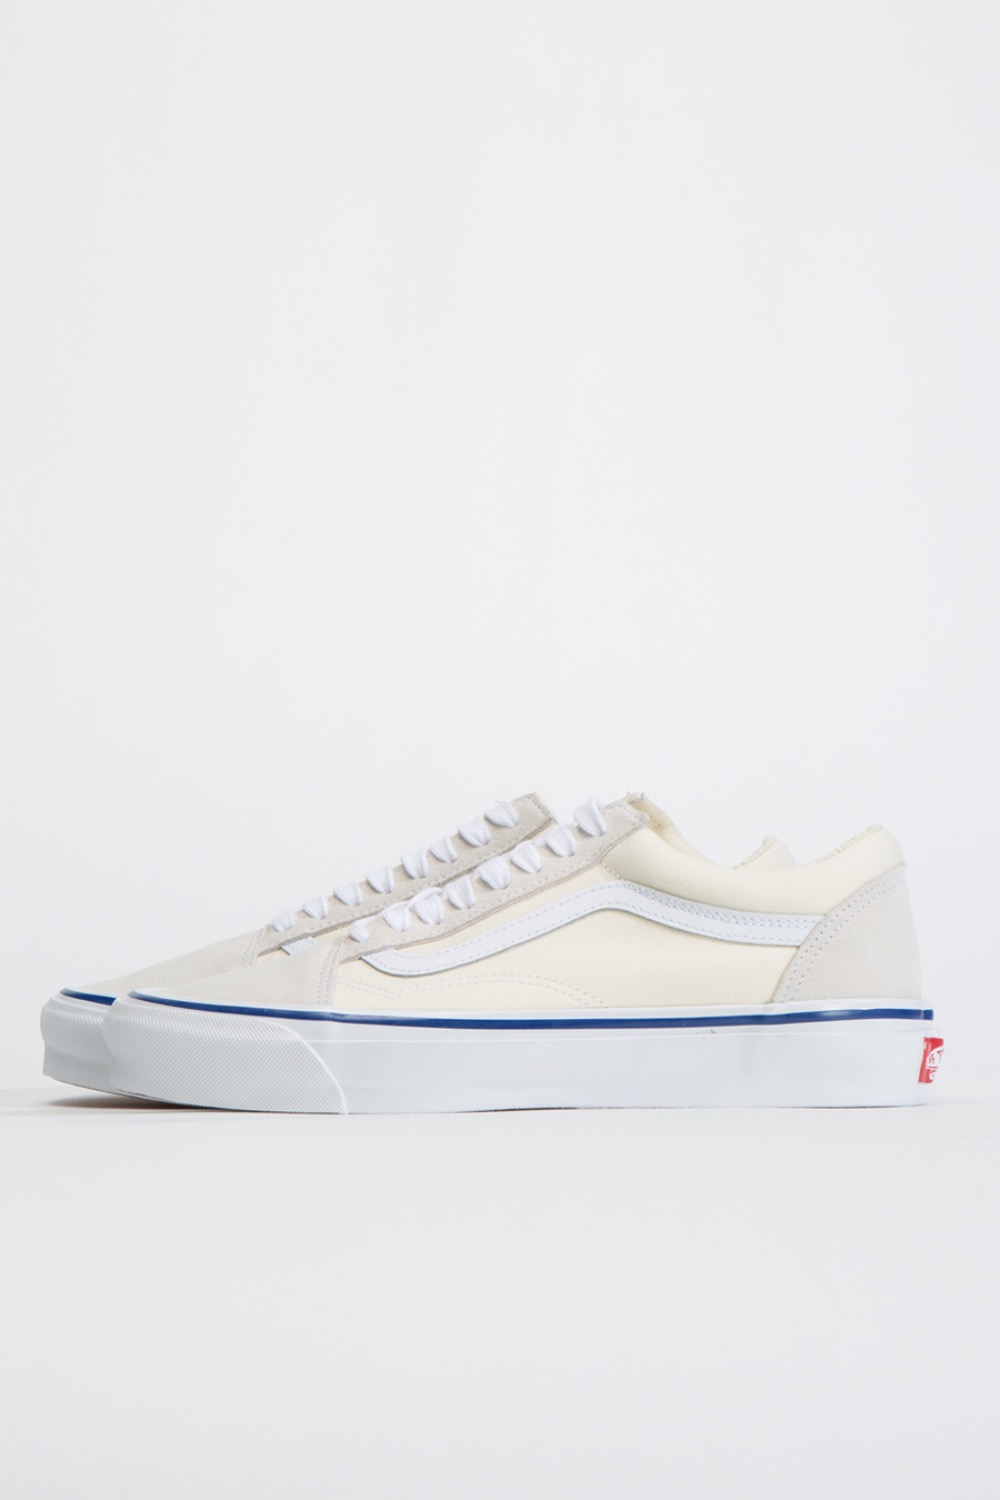 OG OLD SKOOL LX(SUEDE/CANVAS)CLASSIC WHITE/TRUE WHITE